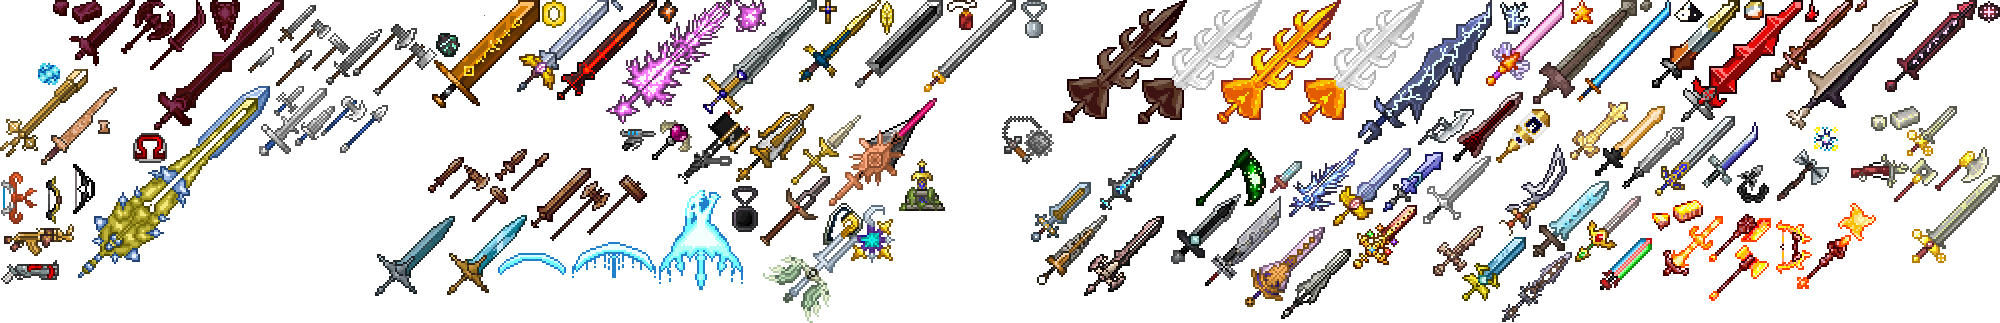 Project TRINITY Sprites (1st Decade).png